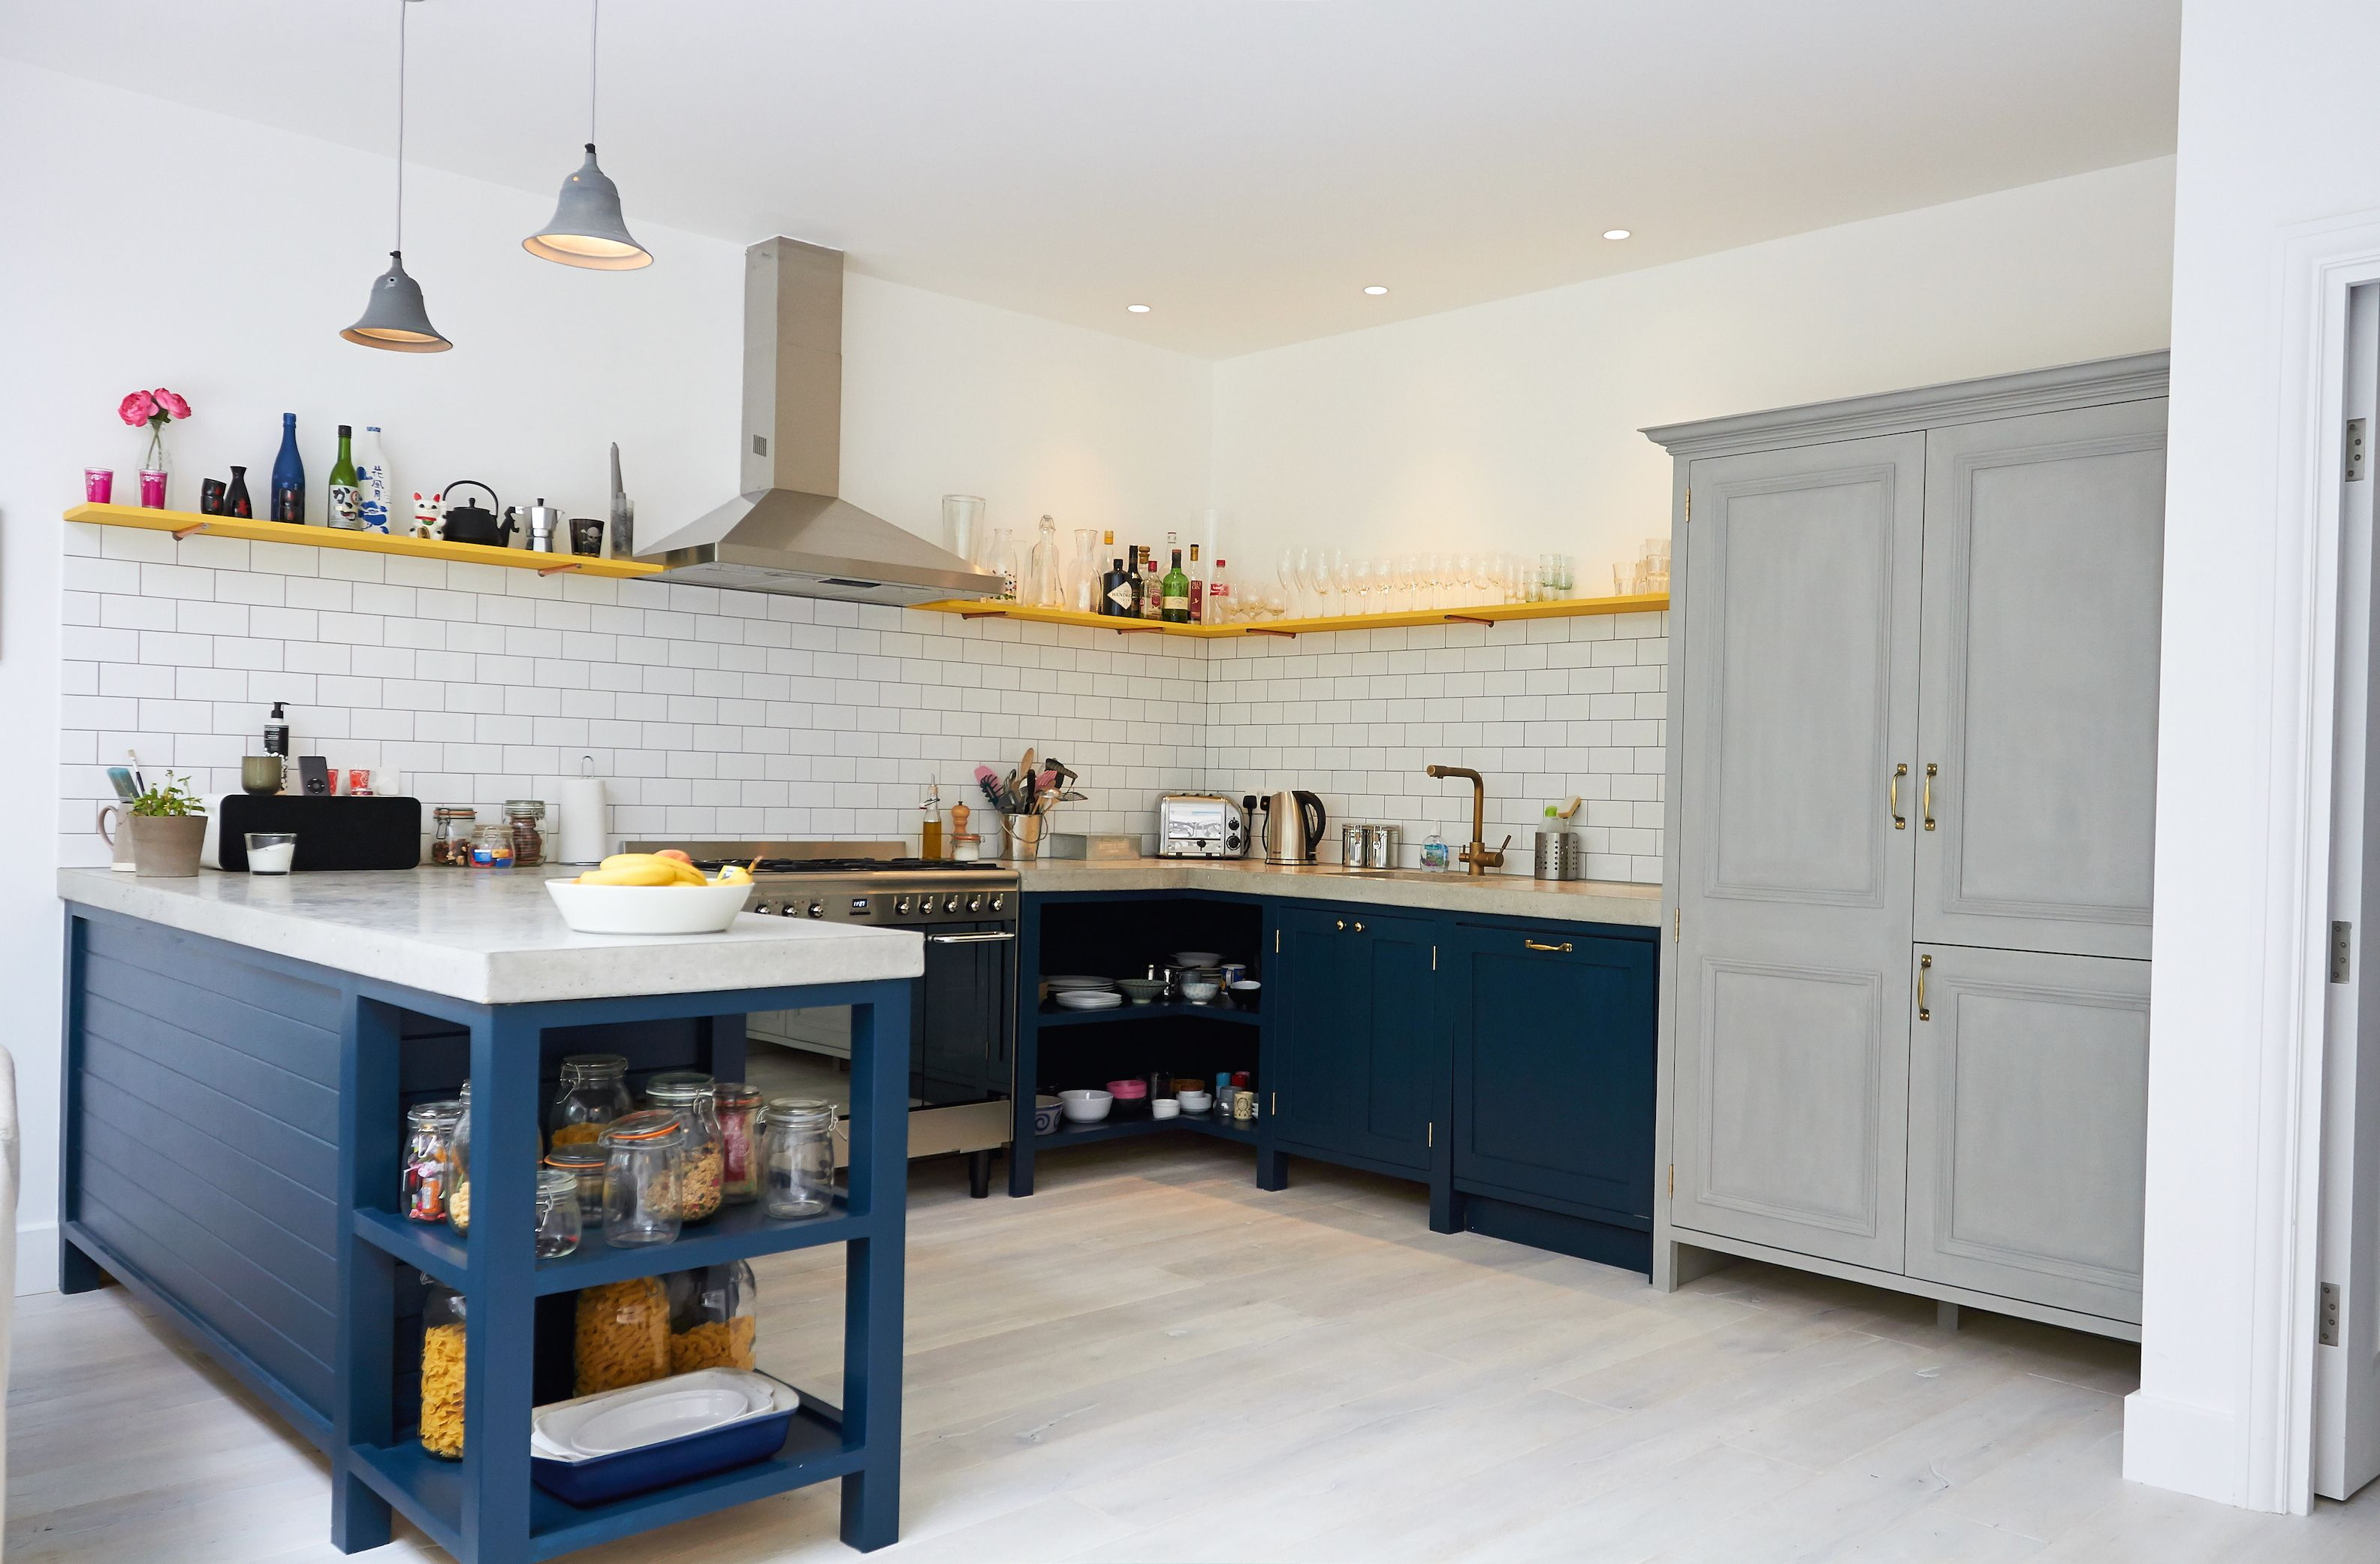 Arnolds Kitchens | Loft kitchen, Upcycled kitchen cabinets ...